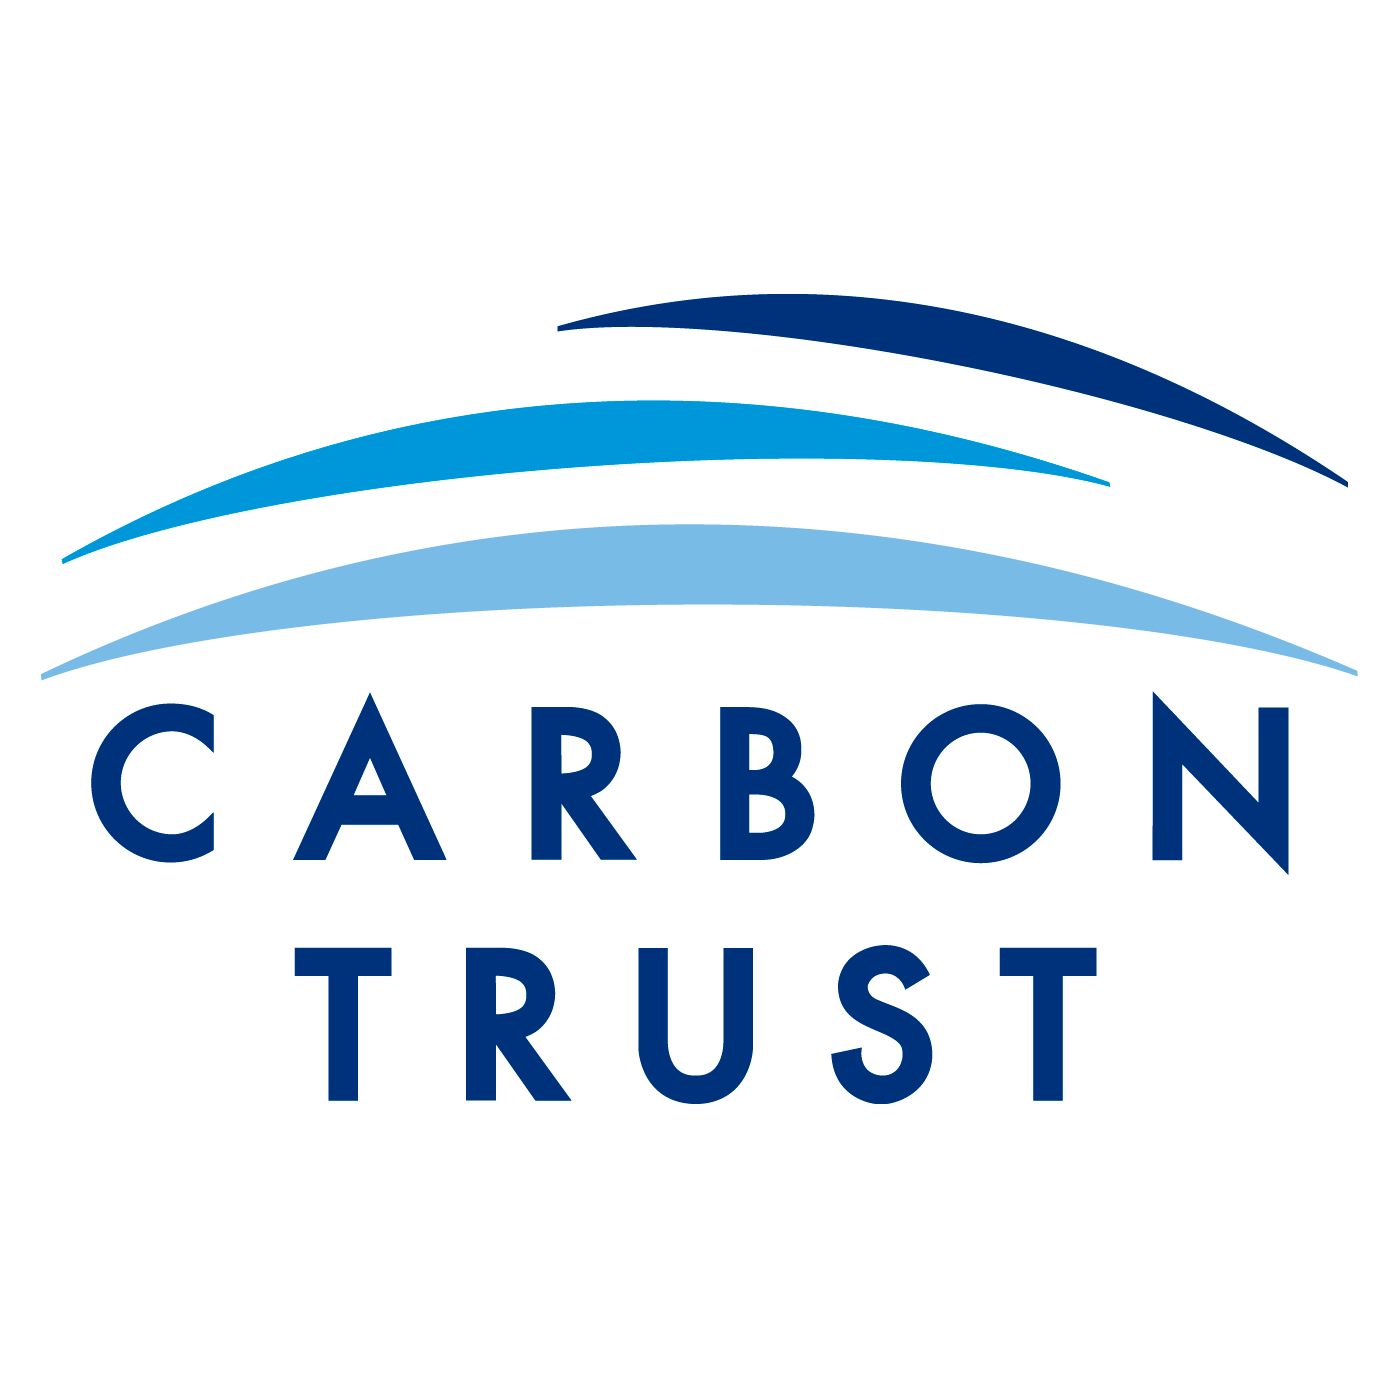 Carbon Trust | Sustainability & Carbon Reduction for Business